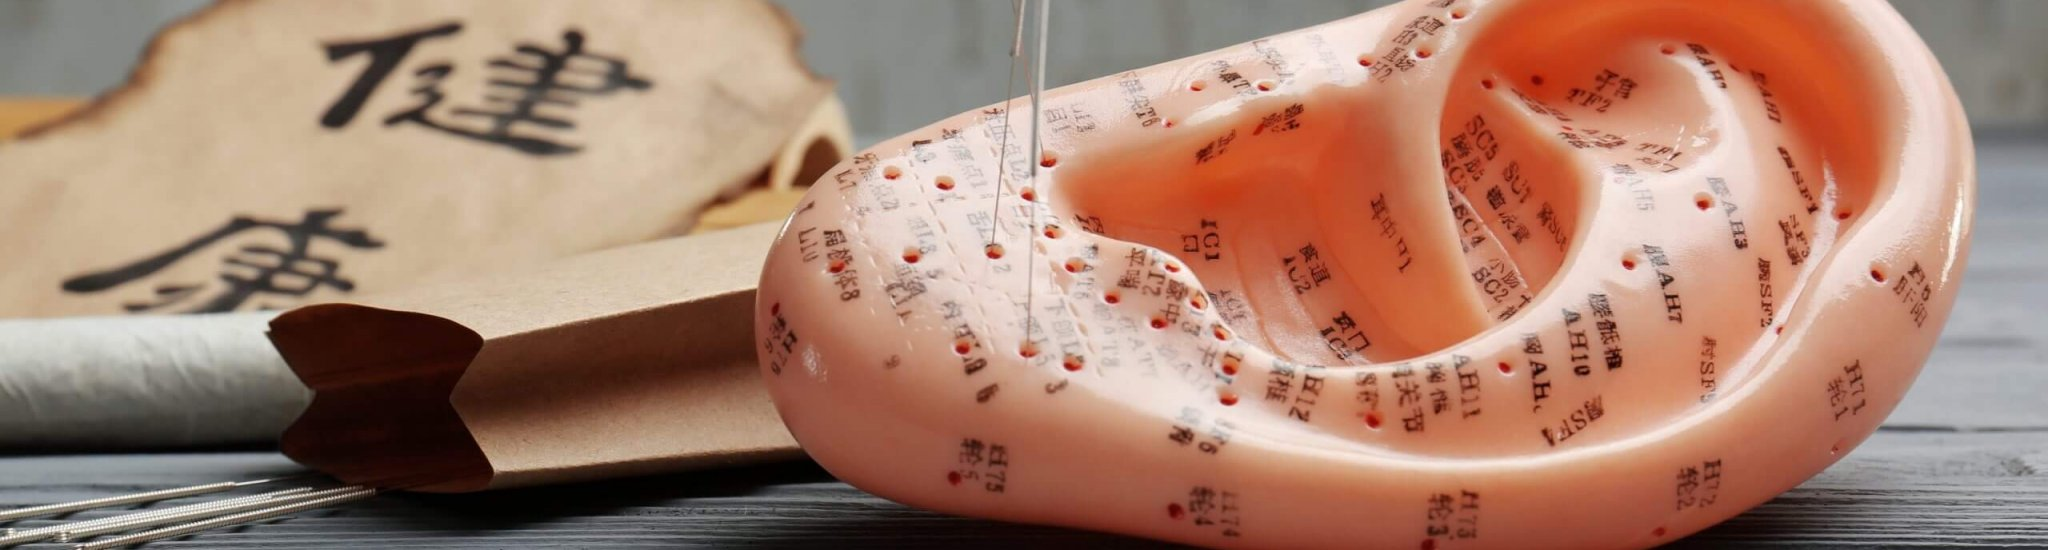 Model of ear with acupuncture needles on table